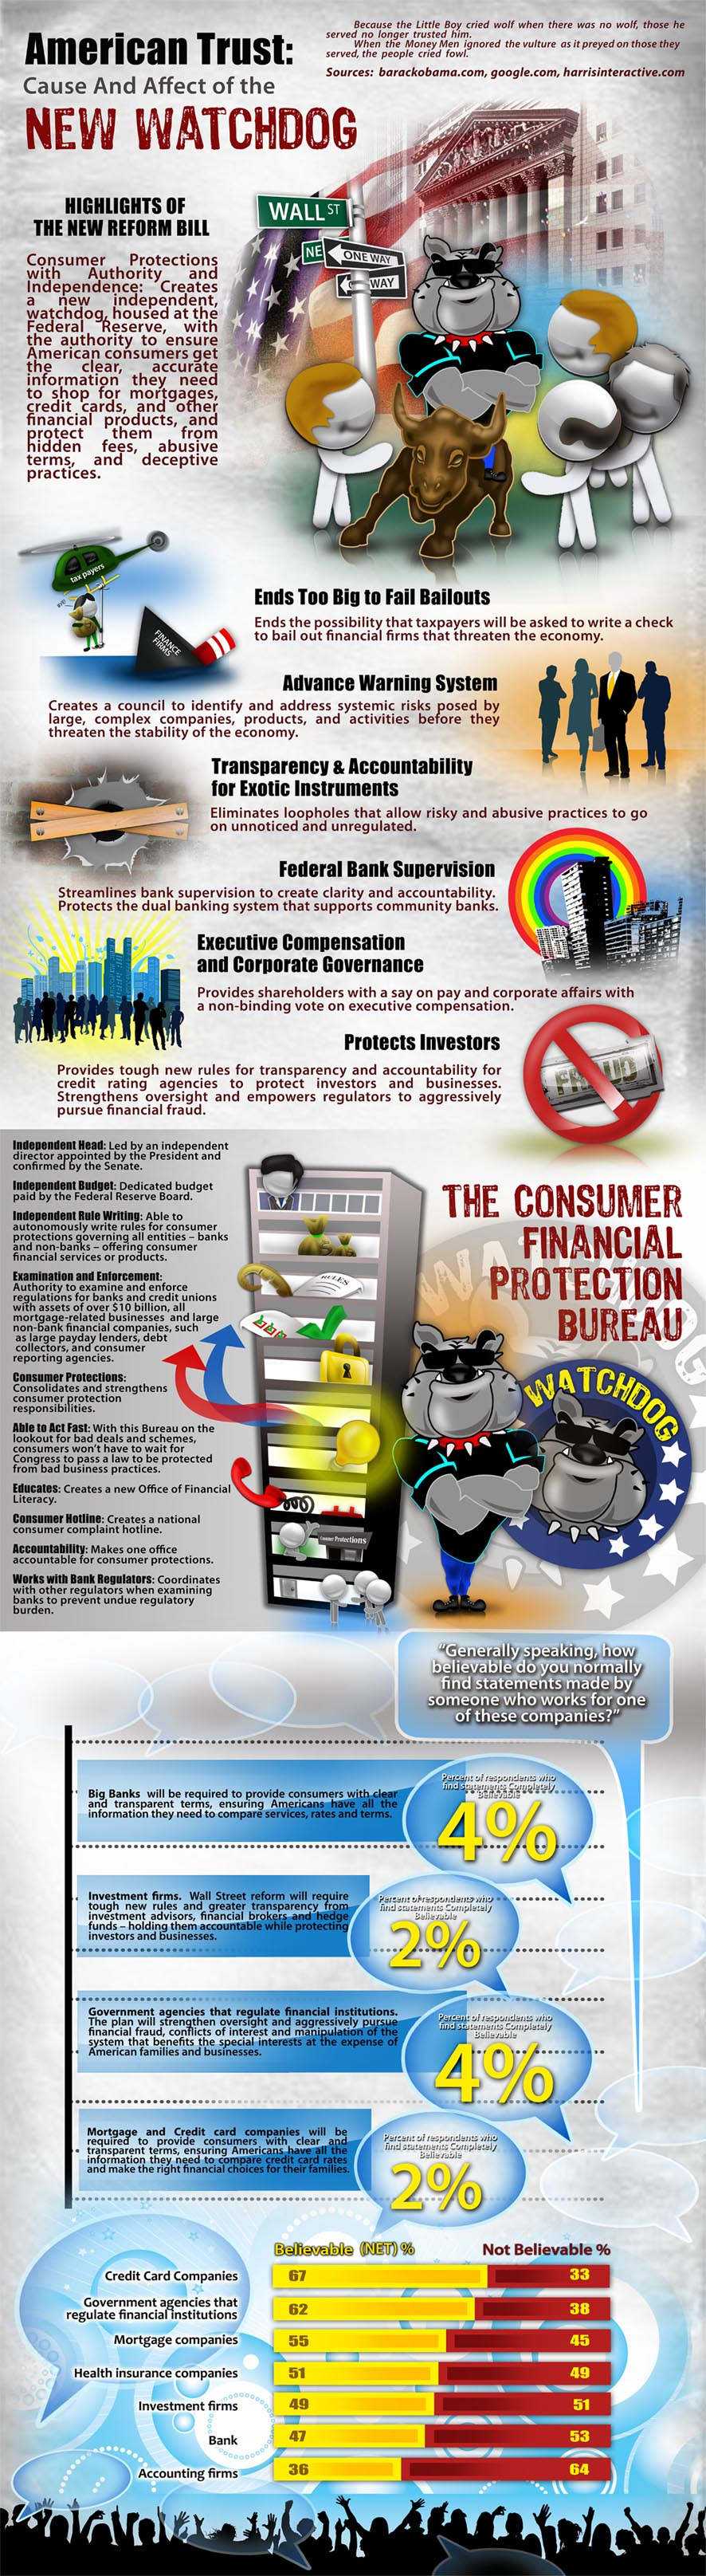 Details about the Consumer Finance Protection Bureau, illustrated as an infographic